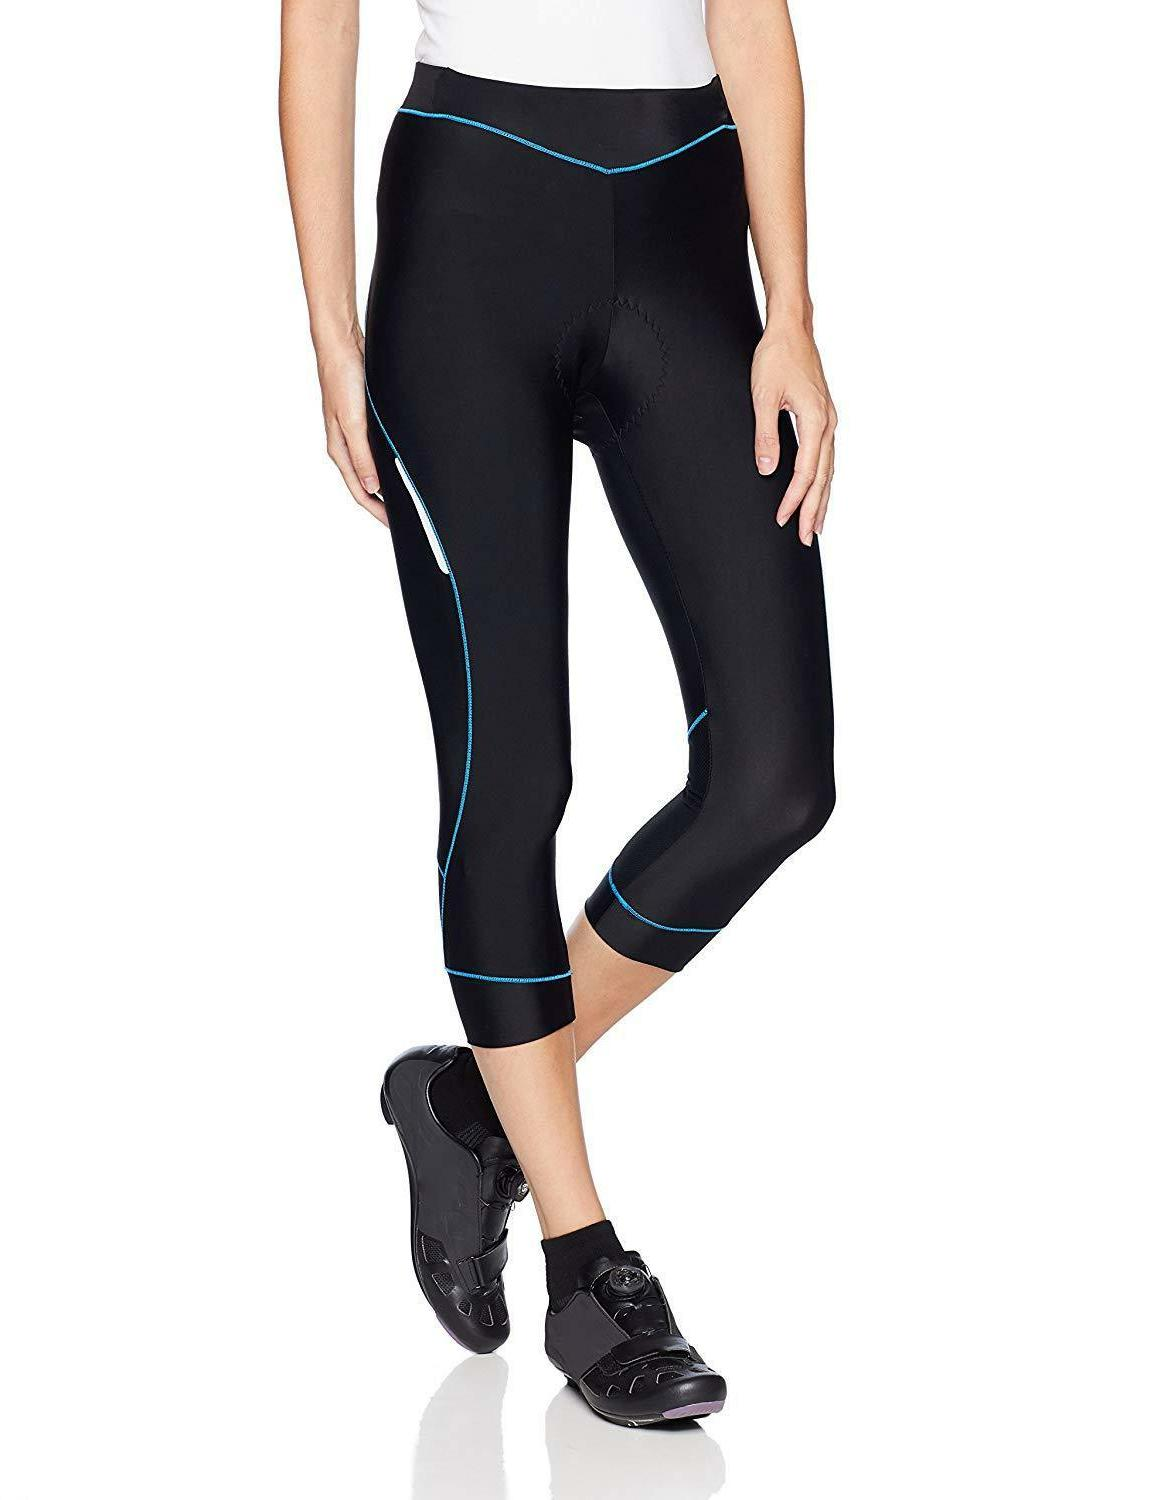 4ucycling Women 3D Padded Cycling Tights FAST!